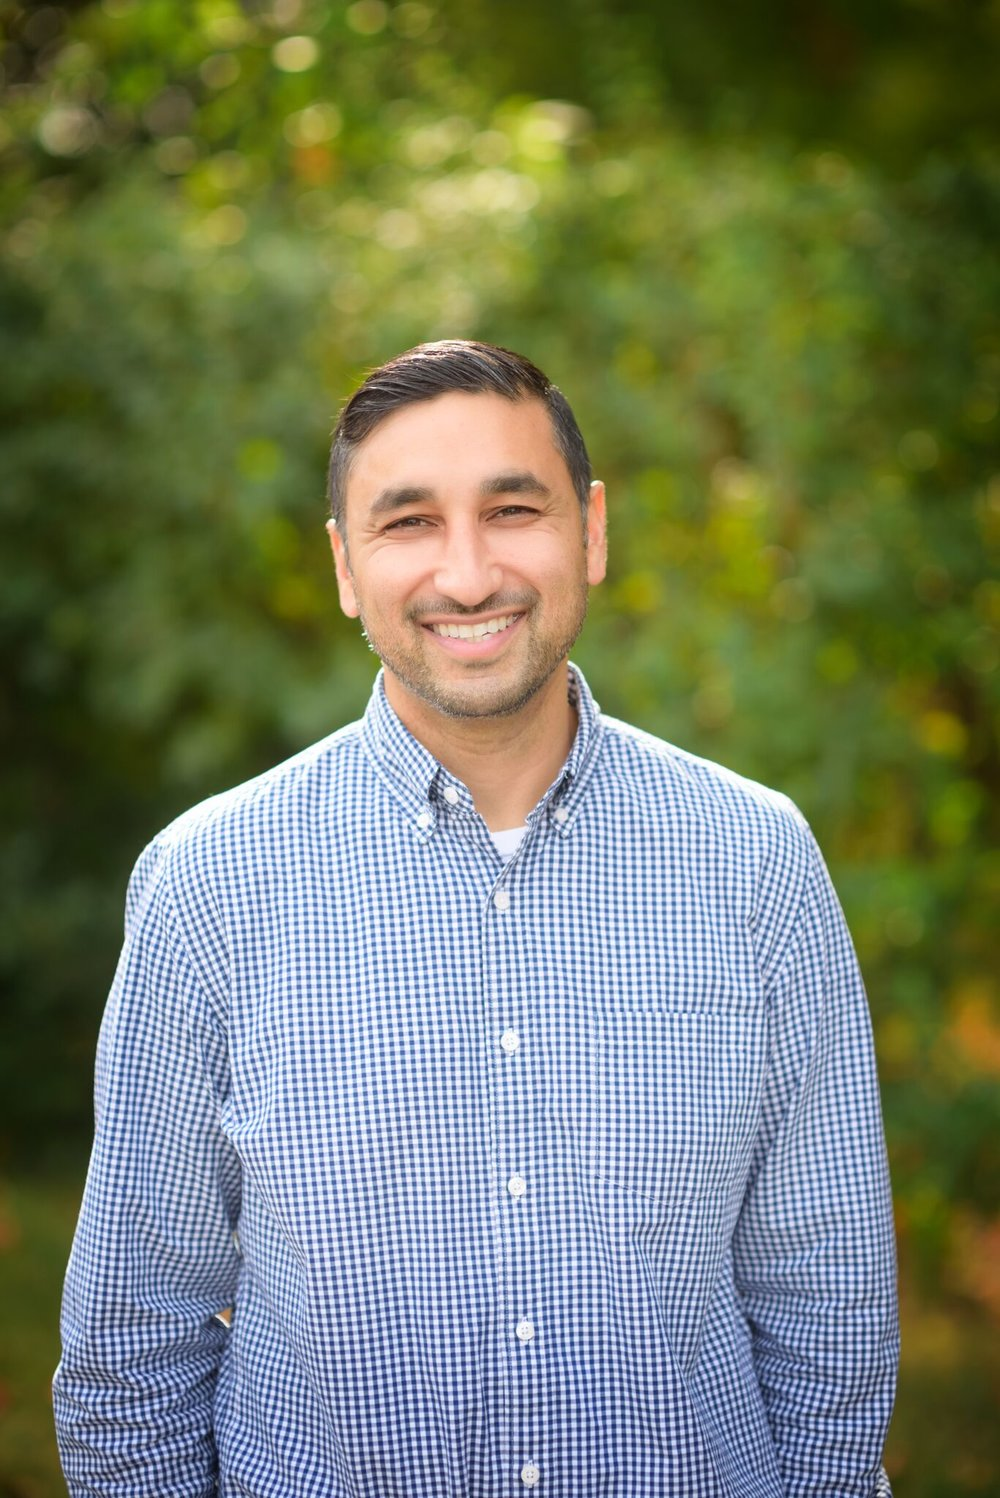 Sanj is originally from California and has a BA from the University of California, Sacramento. Sanj received his AMI training from the Montessori Training Center of New England. He enjoys exploring the great outdoors, cooking, and going on road trips.